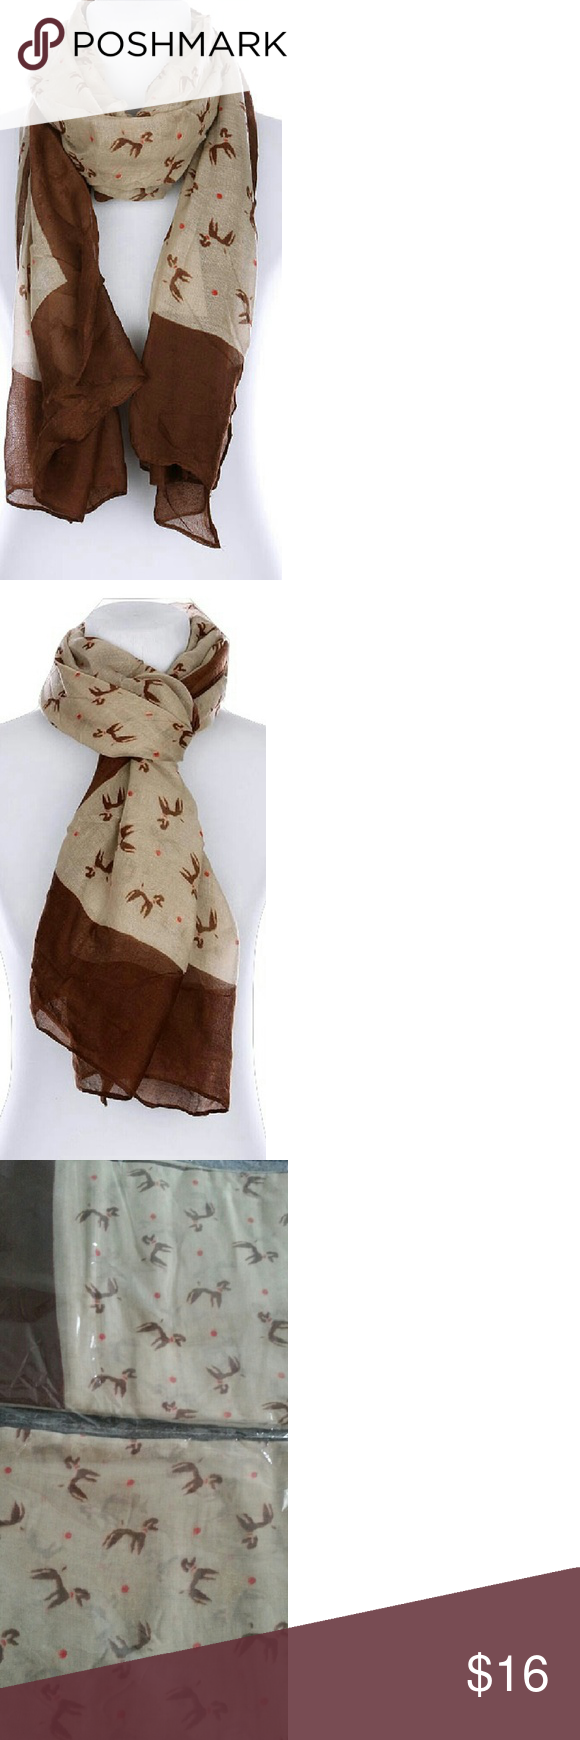 Brown Poodle Scarf Brown Poodle Scarf New straight from vendor Length 72 inches Width 36 inches Materials Viscose Cute way to add style to your outfit Bundle to save on shipping and get a discount Accessories Scarves & Wraps